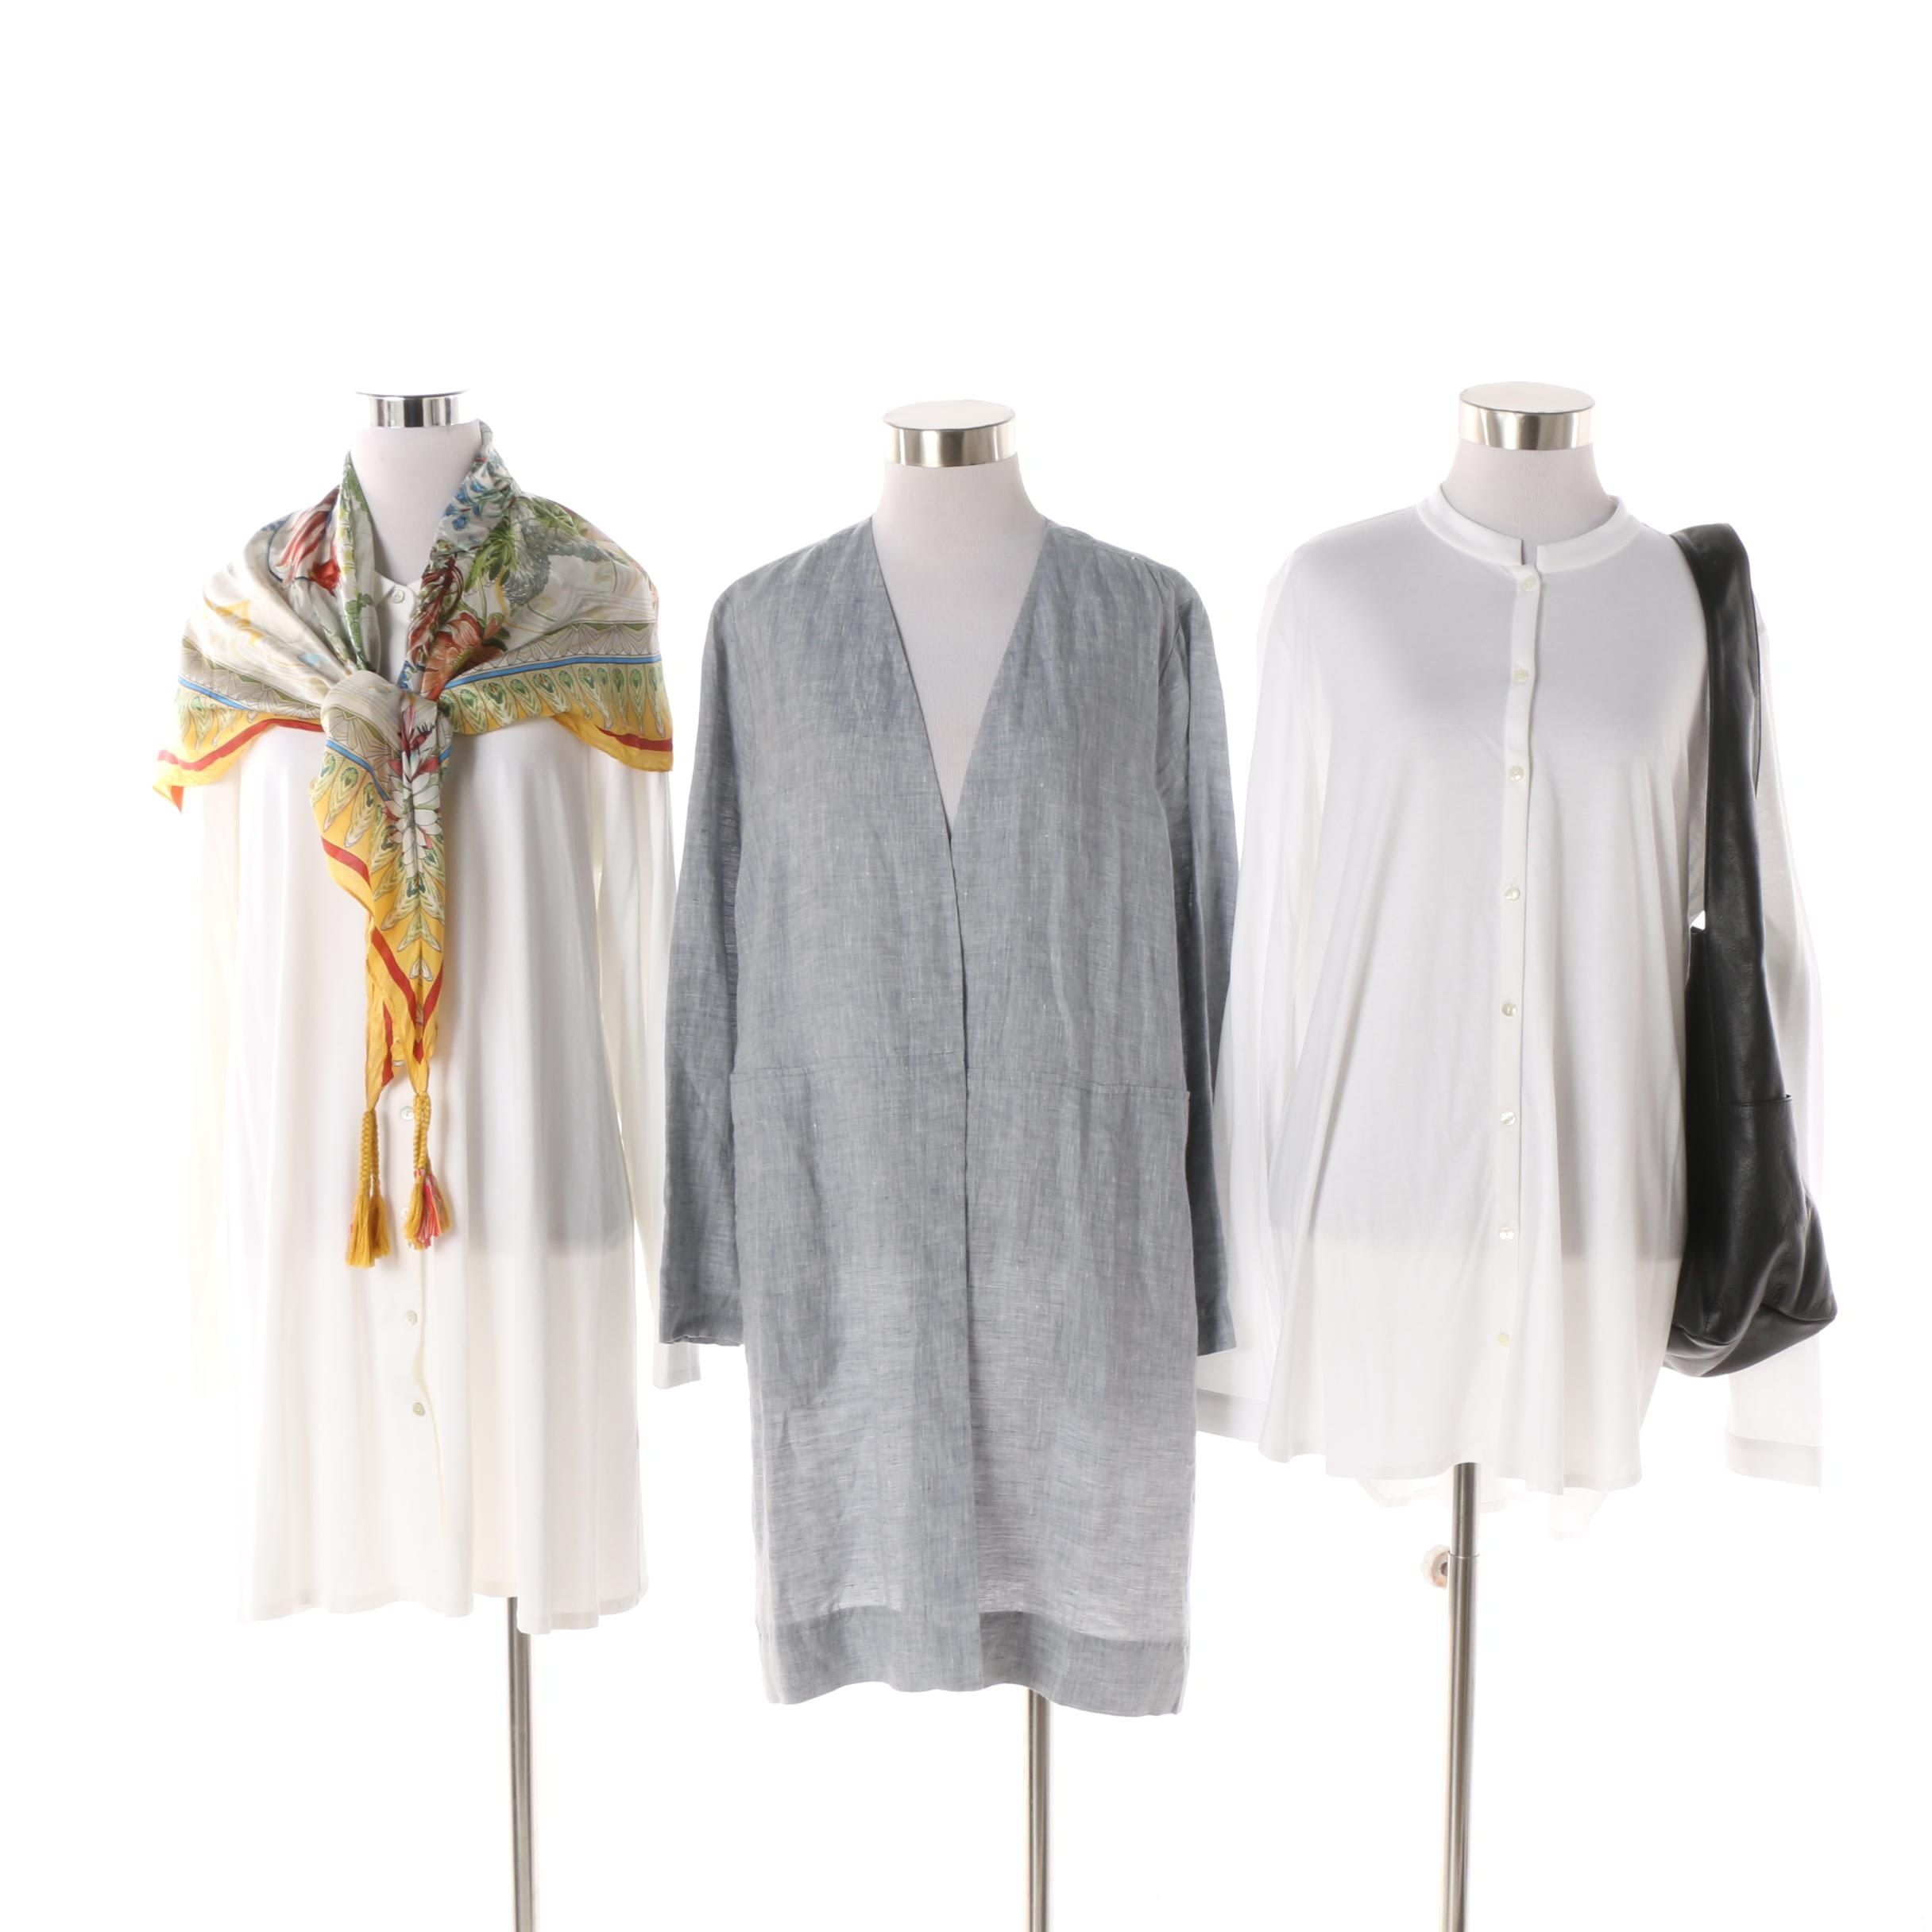 Eileen Fisher Tunics, Floral Scarf and Black Leather Hobo Bag